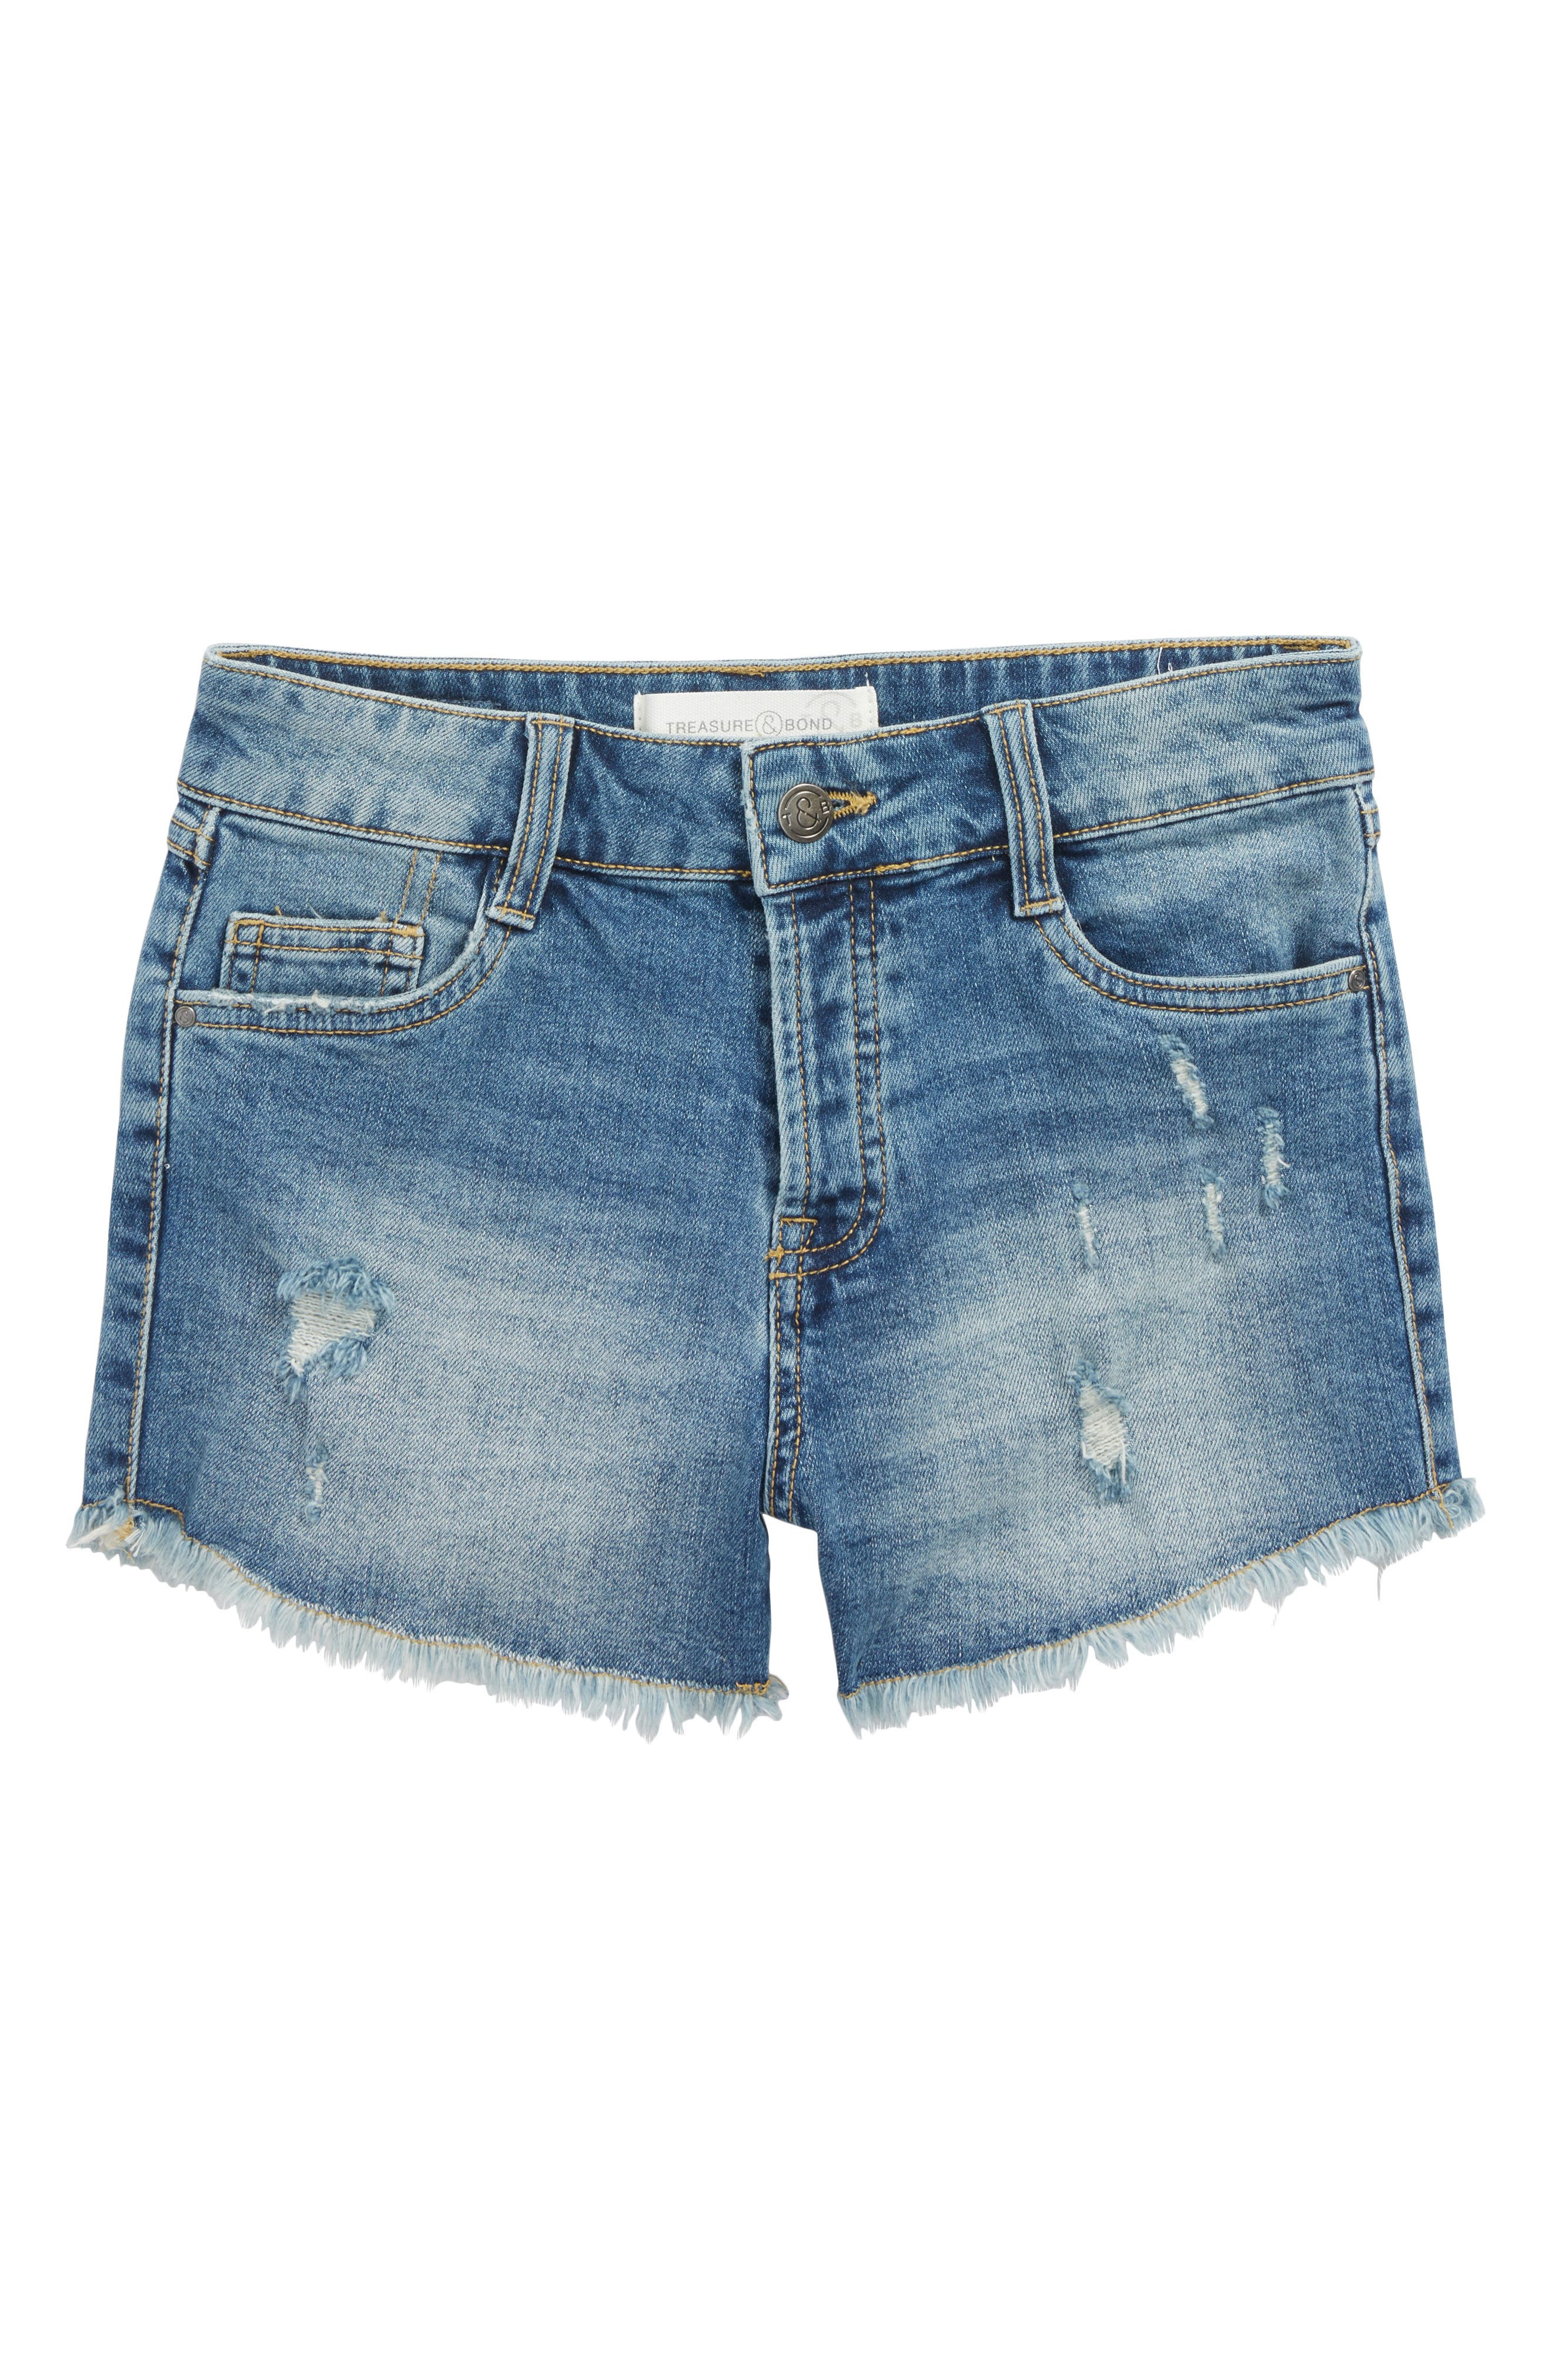 Distressed Cutoff Denim Shorts,                             Main thumbnail 1, color,                             Old School Wash